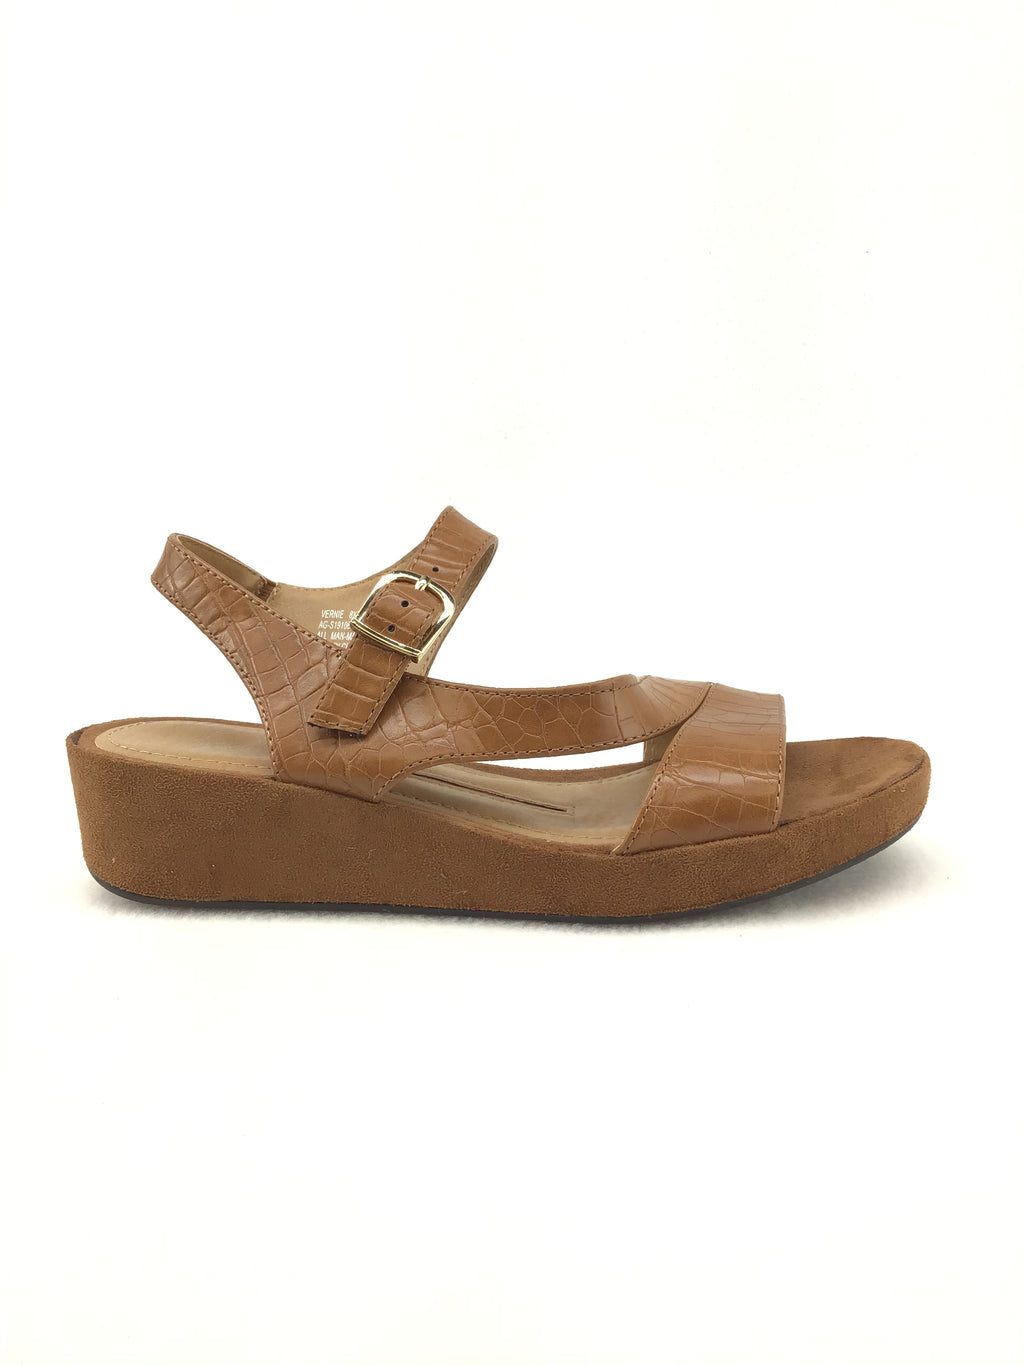 New Directions Vernie Sandals Size 8.5M